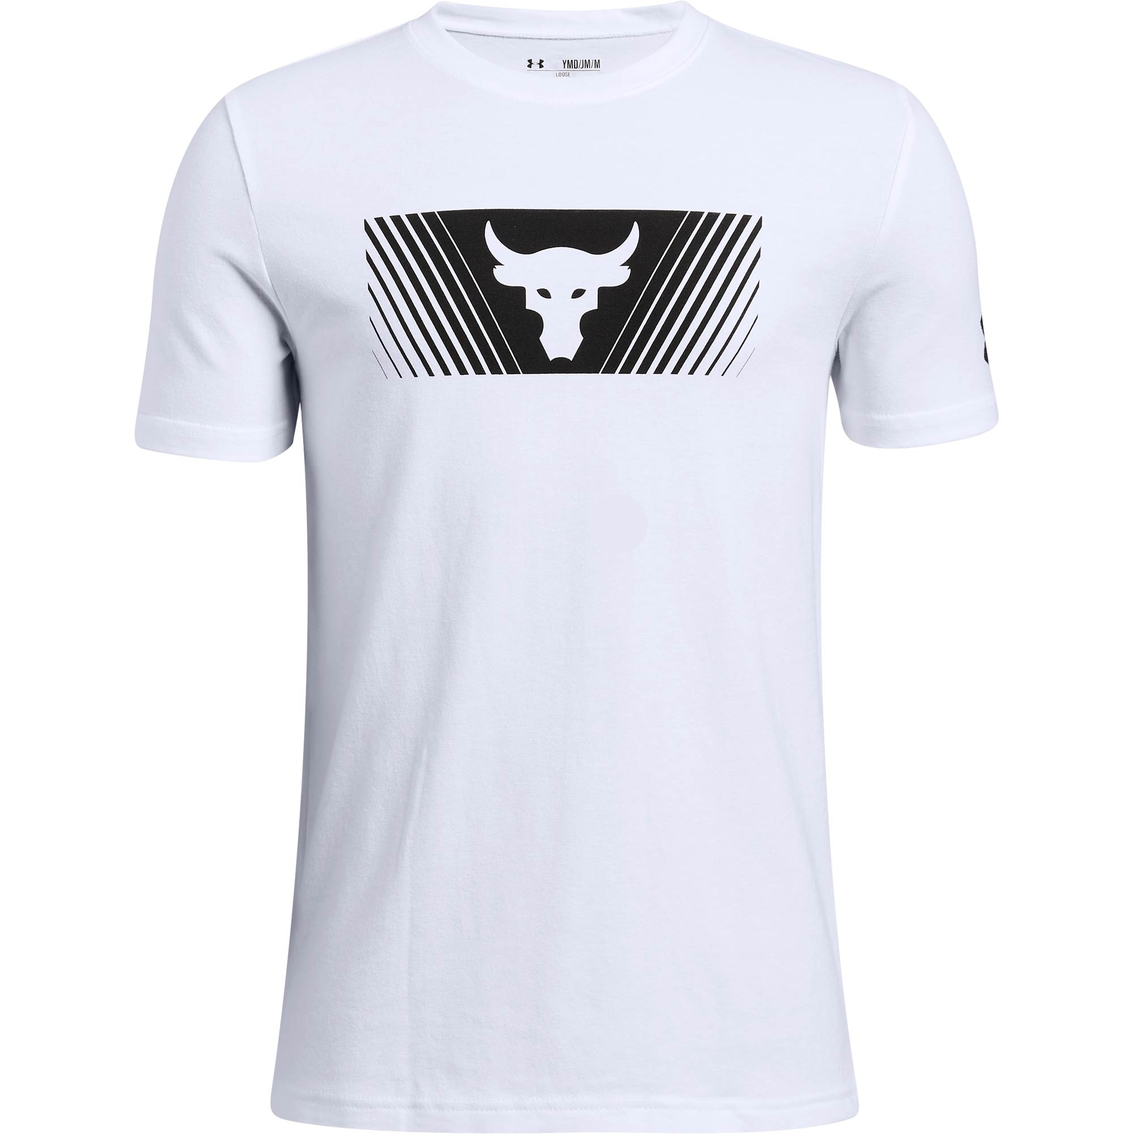 41c5a79c0c99 Under Armour Boys Ua Project Rock Brahma Bull Shirt